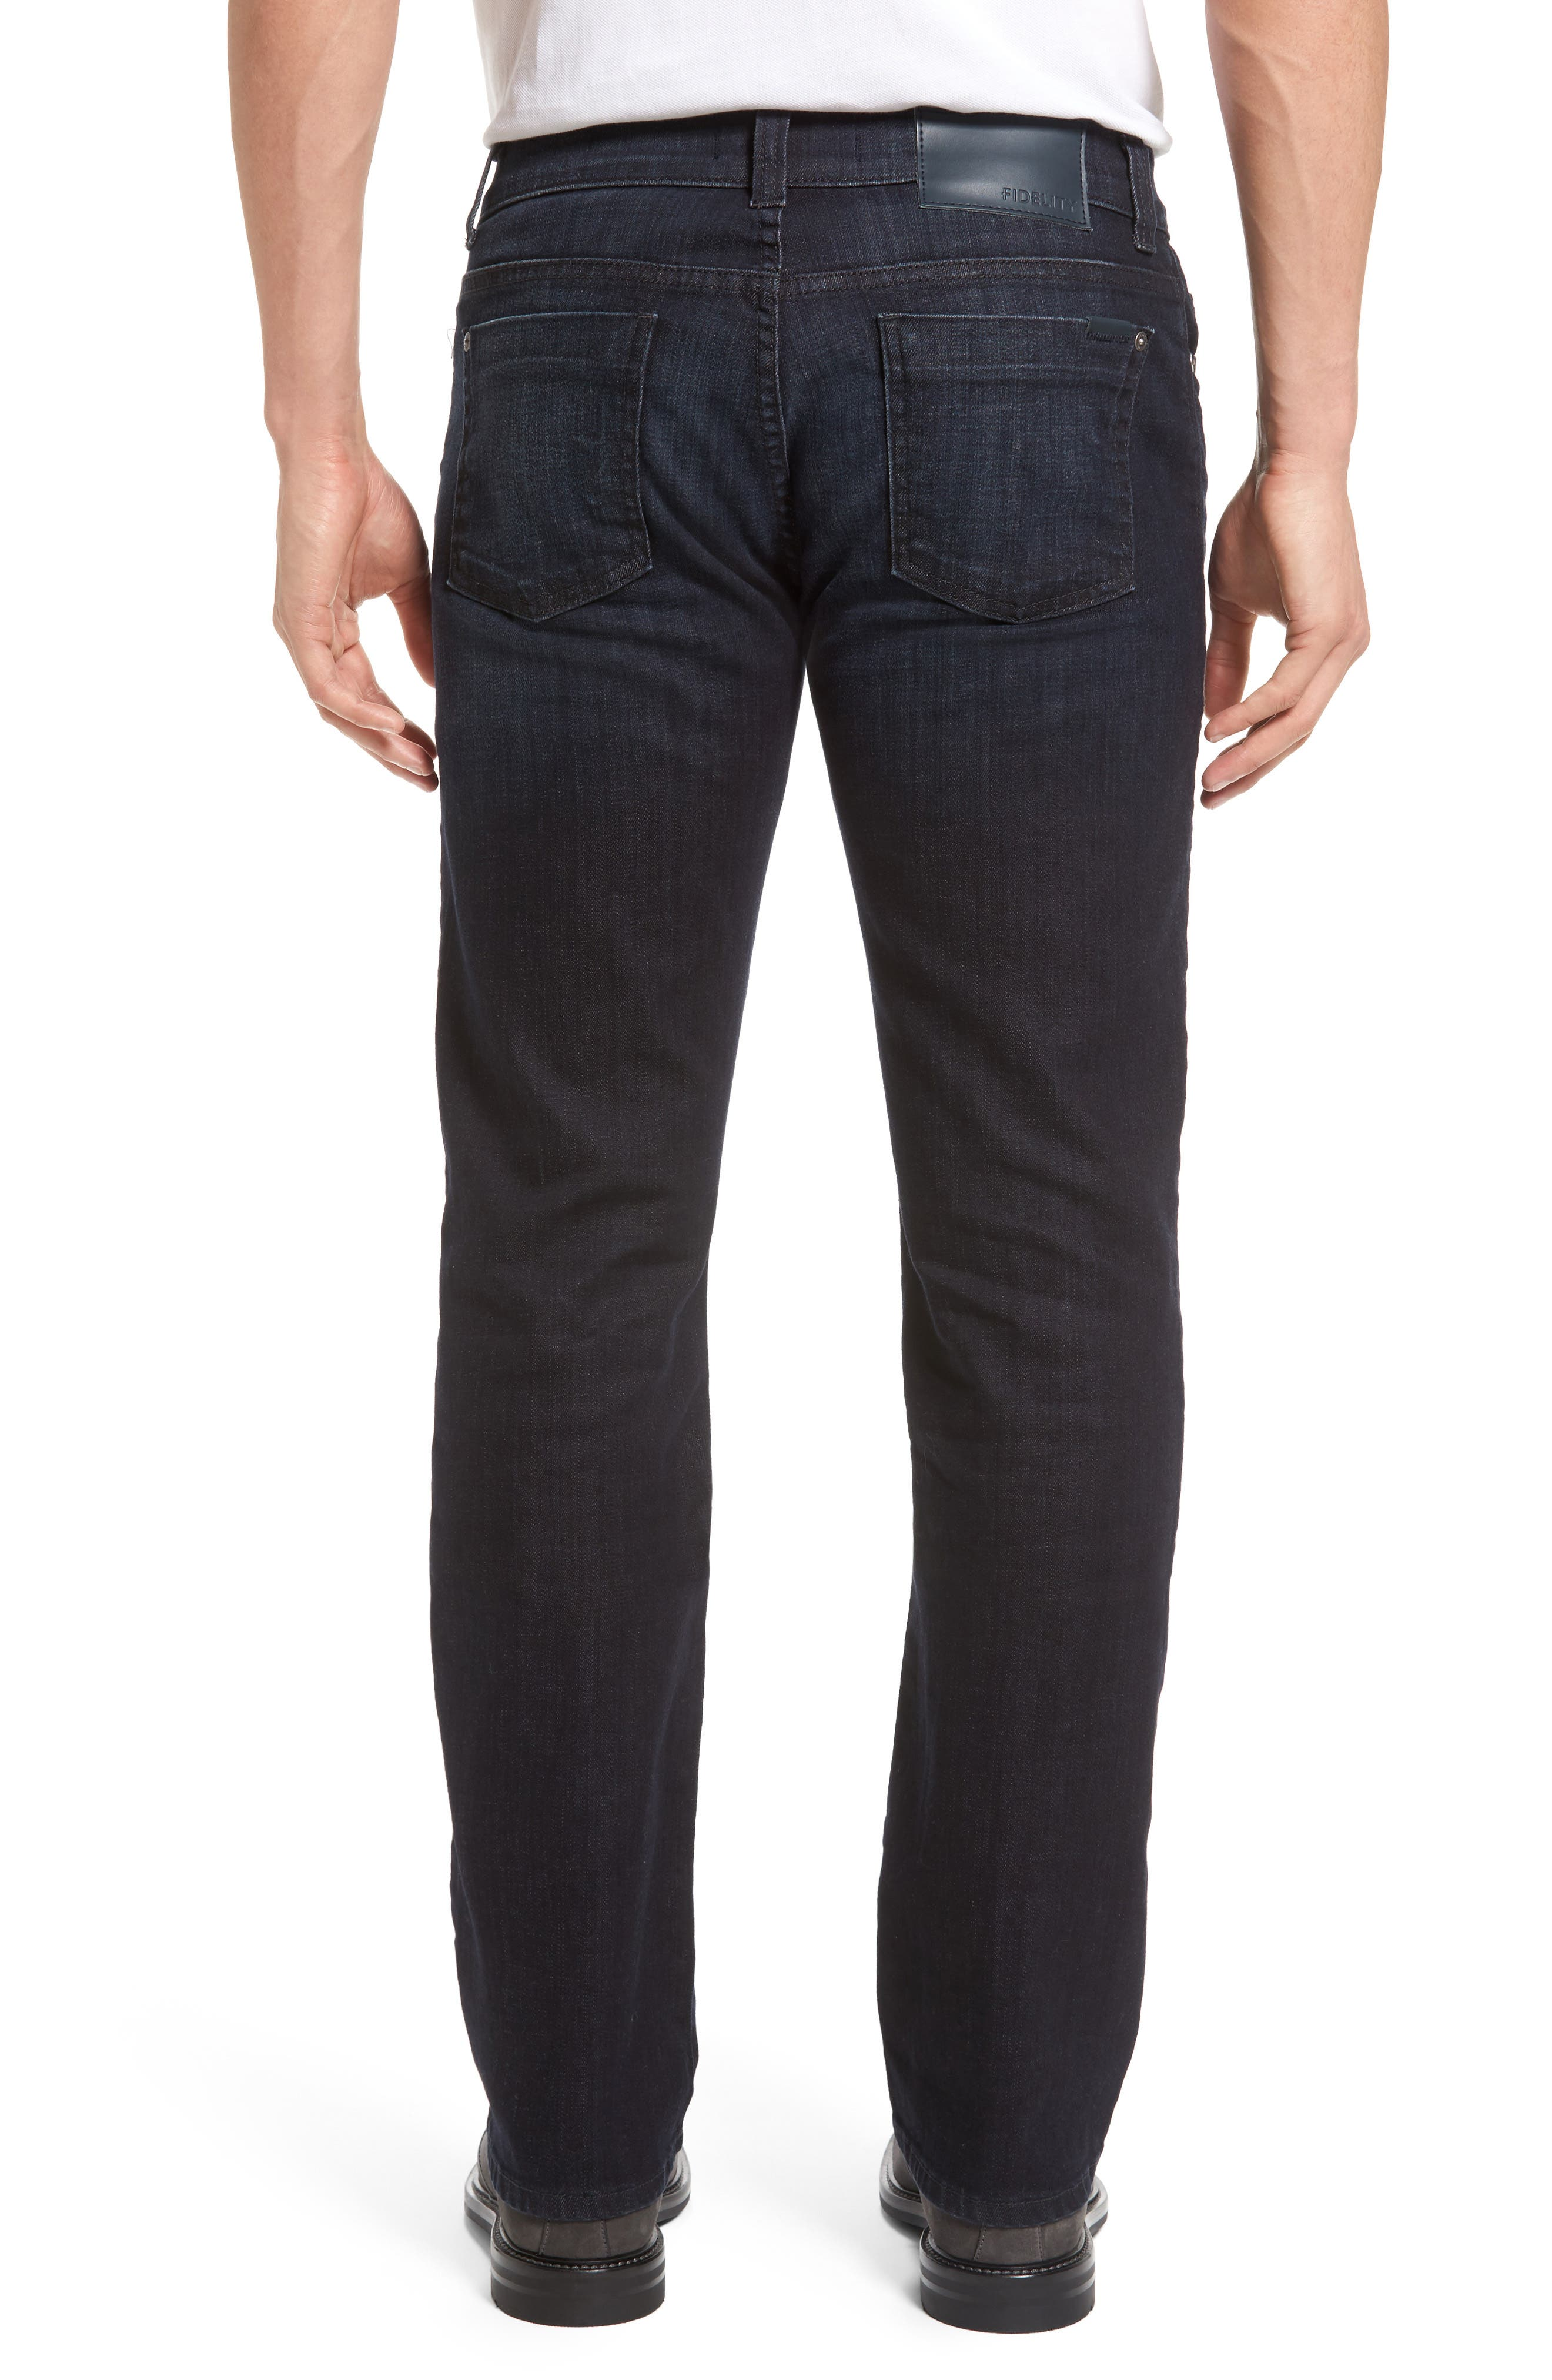 5011 Relaxed Fit Jeans,                             Alternate thumbnail 2, color,